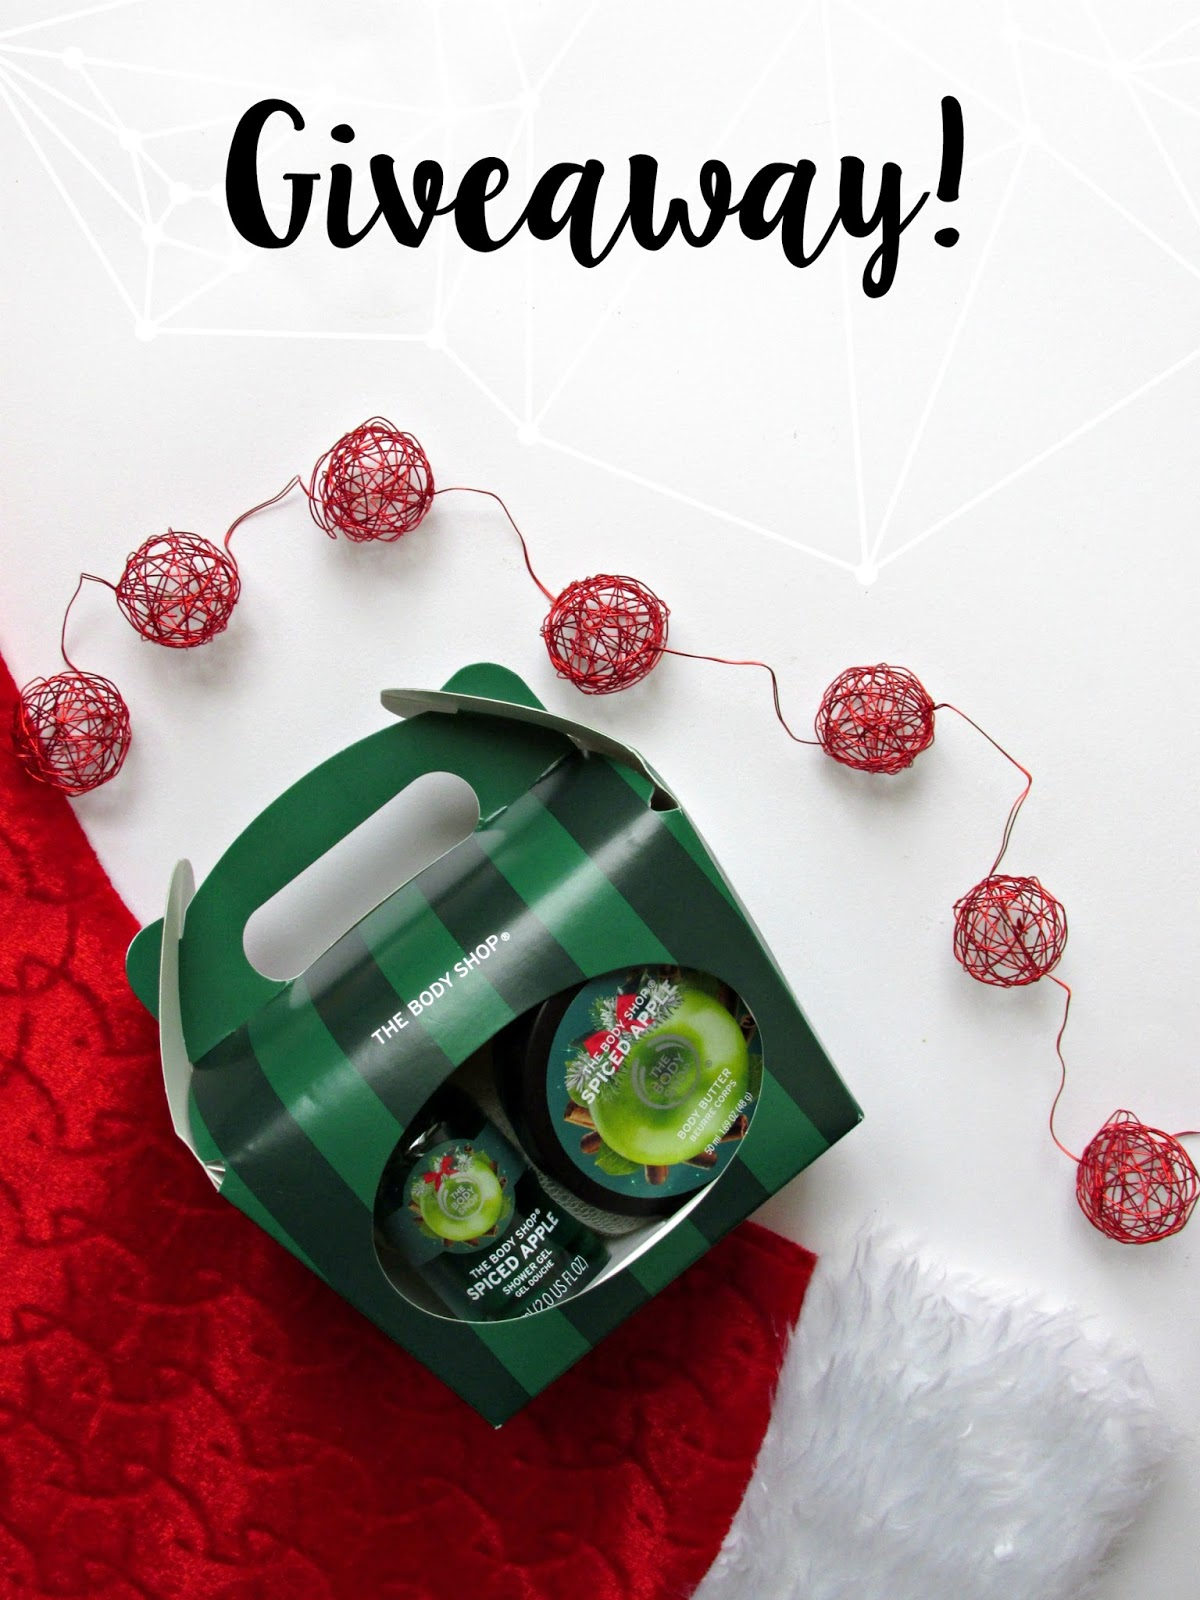 Christmas giveaway, the body shop spiced apple treat box